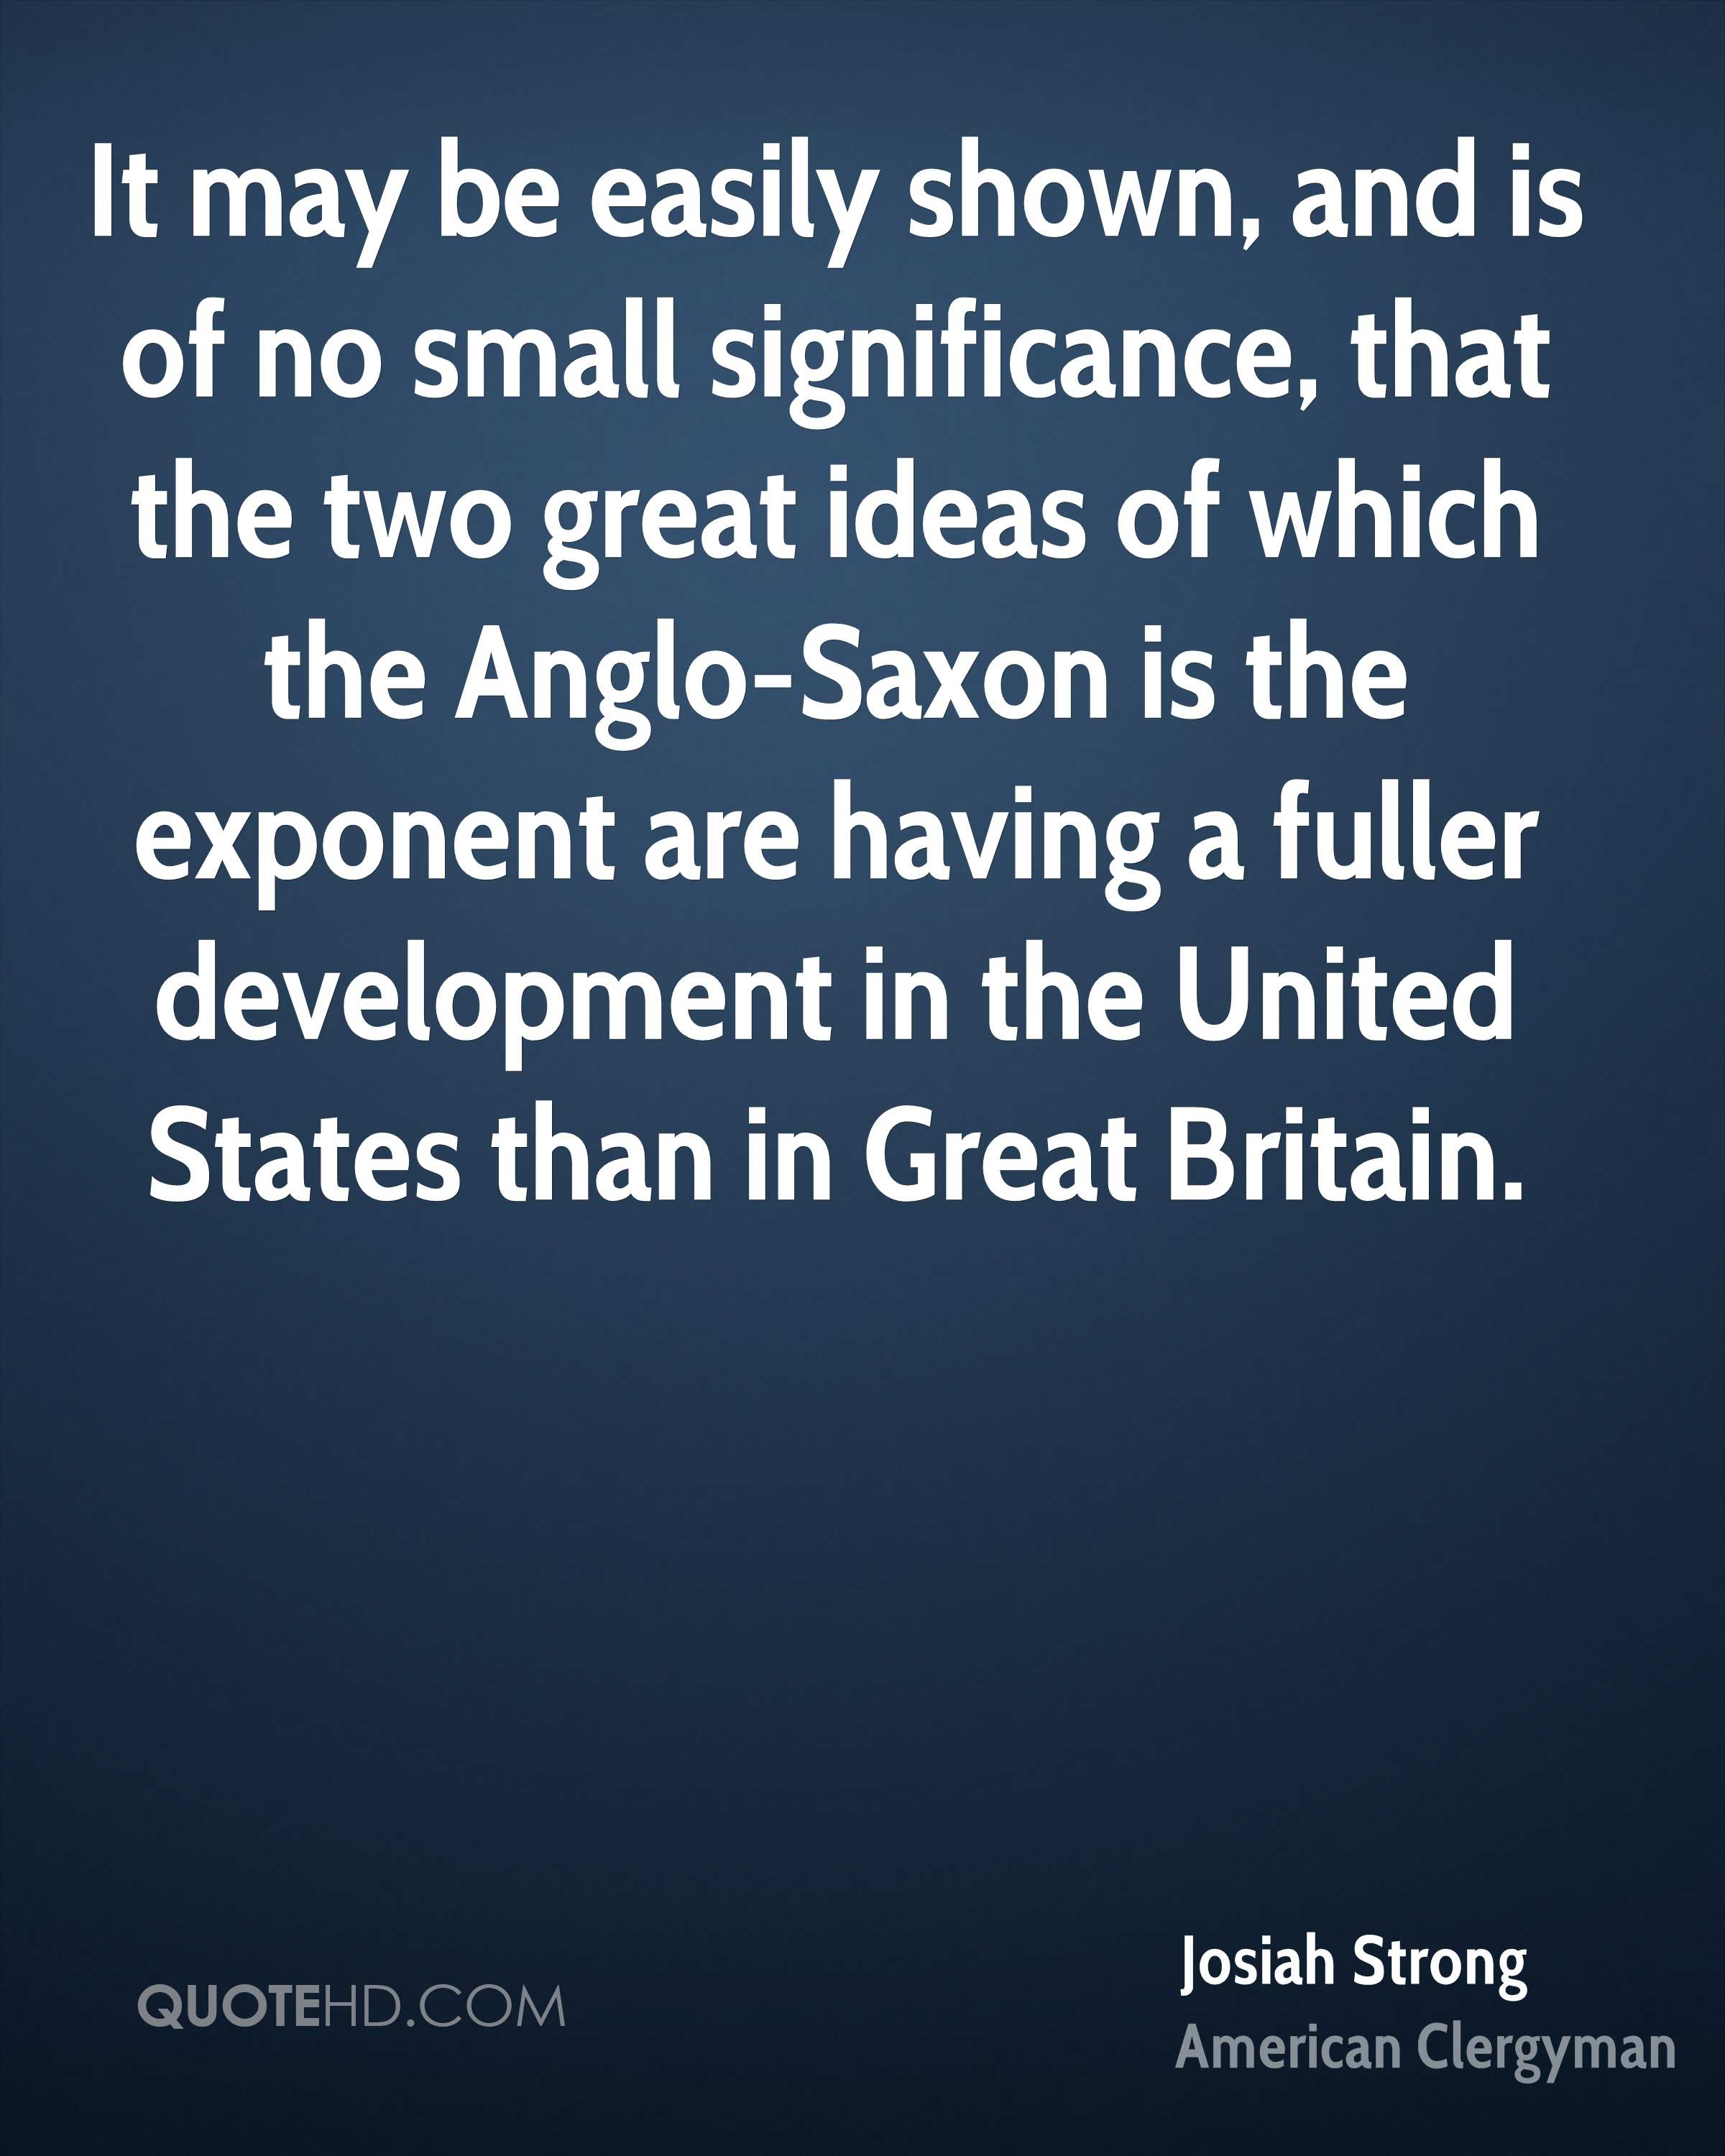 It may be easily shown, and is of no small significance, that the two great ideas of which the Anglo-Saxon is the exponent are having a fuller development in the United States than in Great Britain.